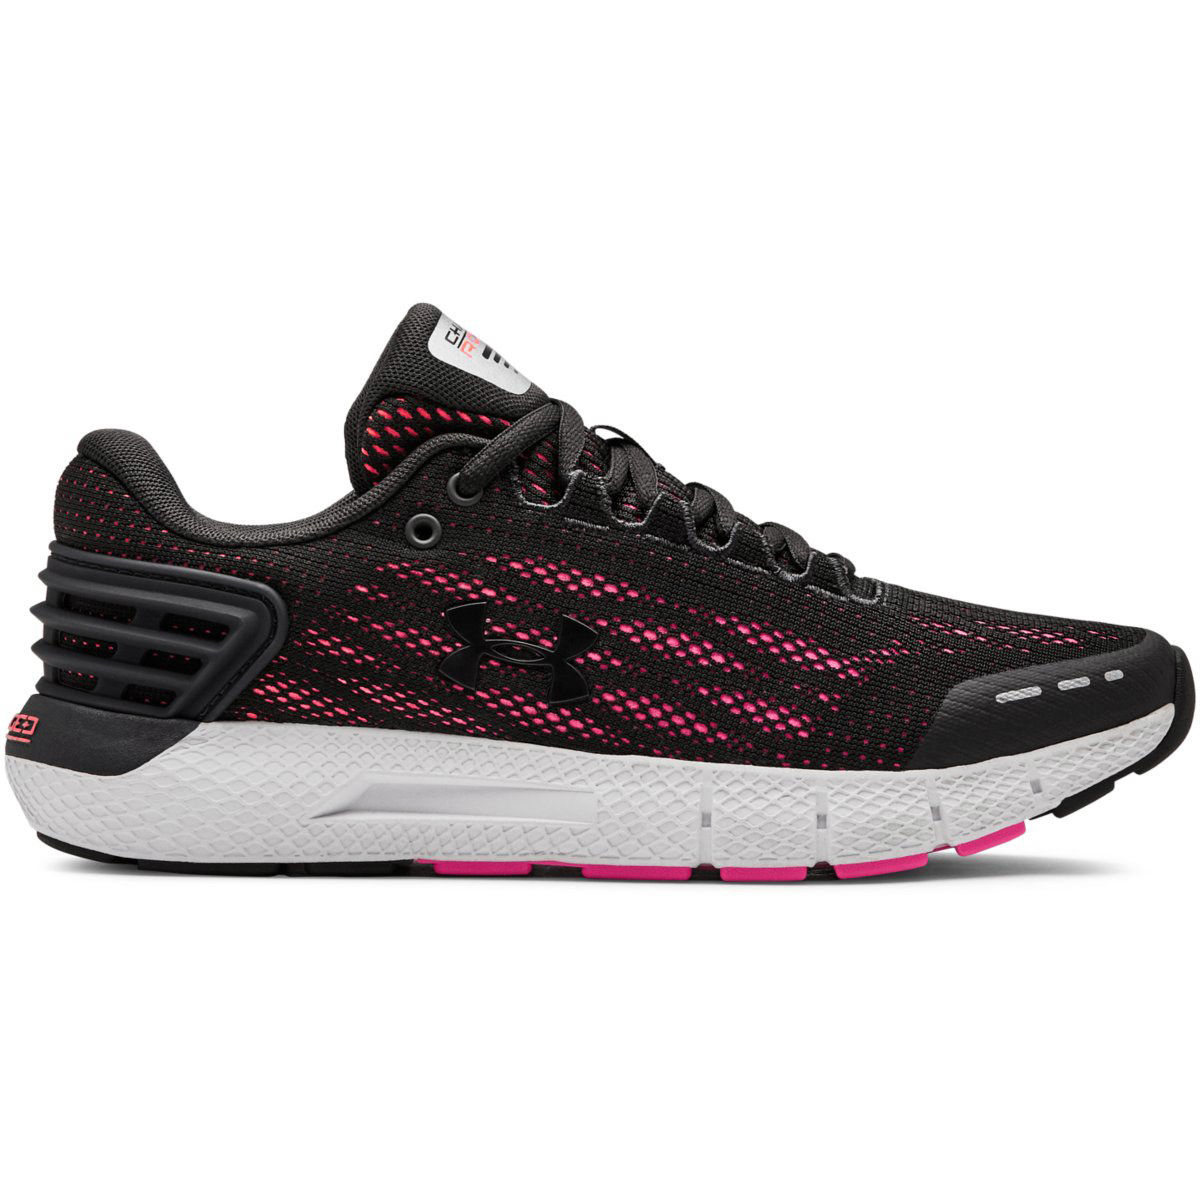 Under Armour Charged Rogue Womens Running Shoe